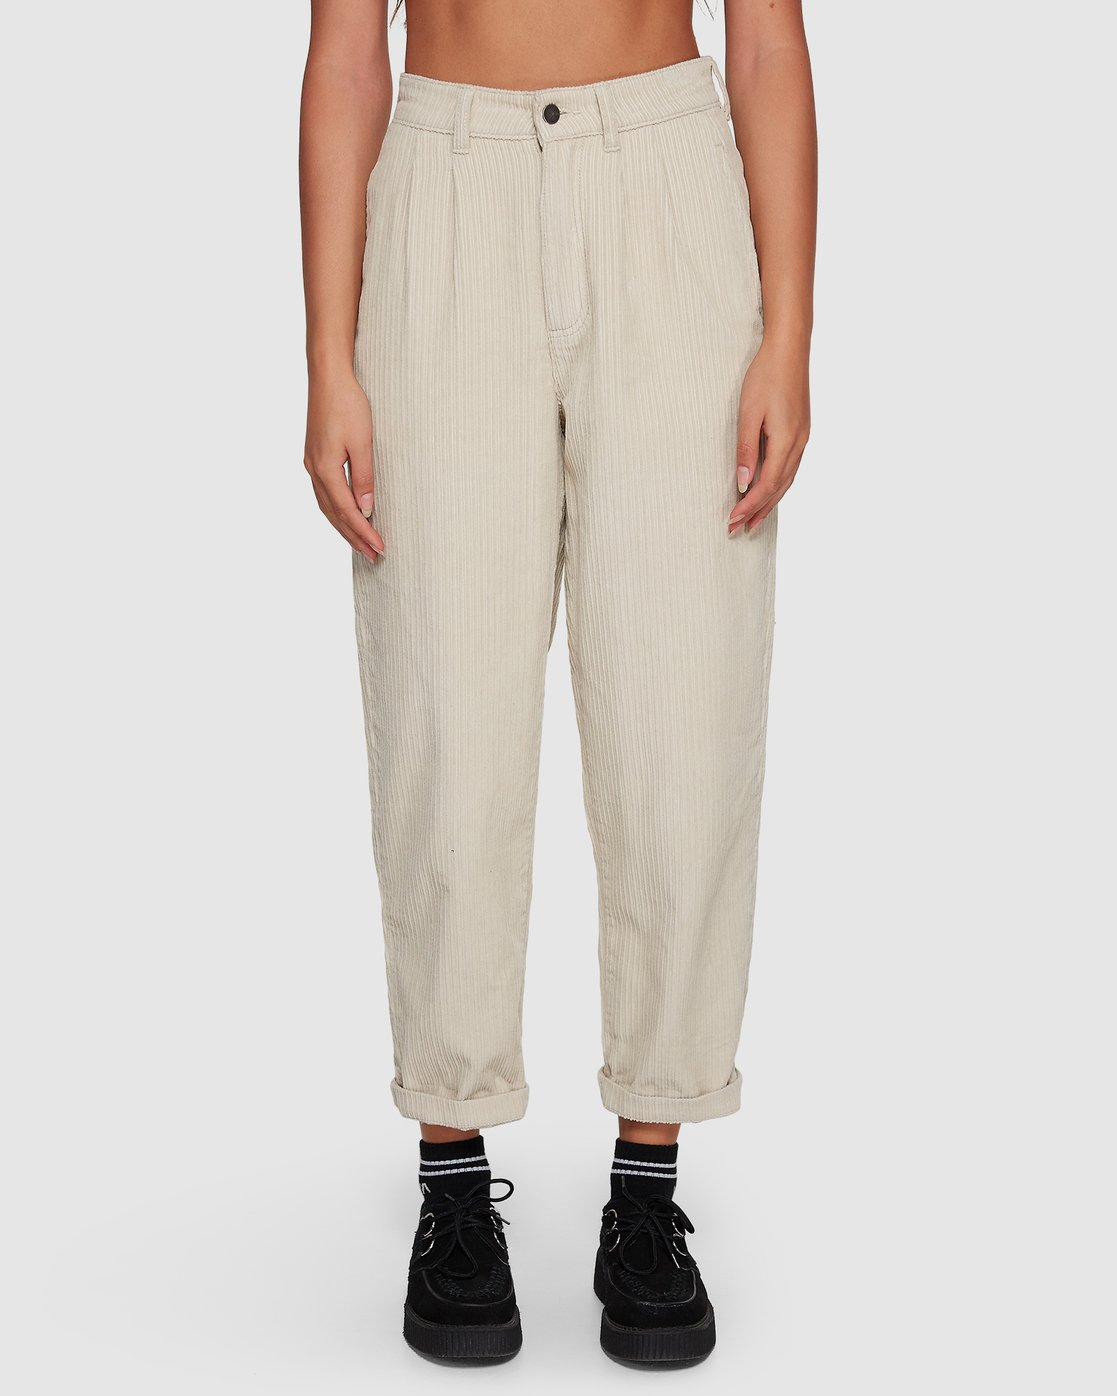 3 Plushed Trousers Beige R207271 RVCA